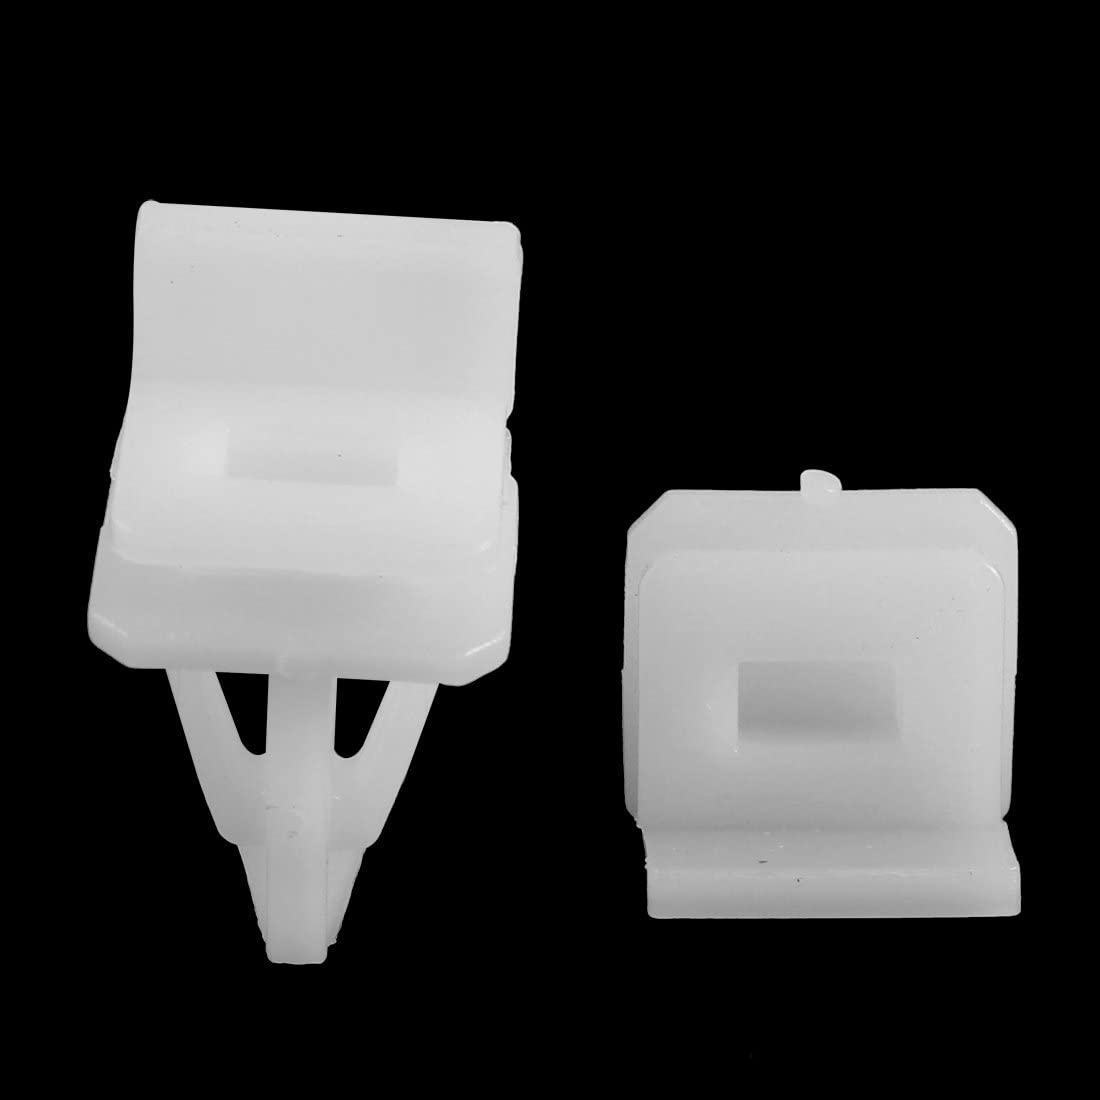 Uxcell a15072900ux0475 Clips//Rivets//Fastener 100 Pack